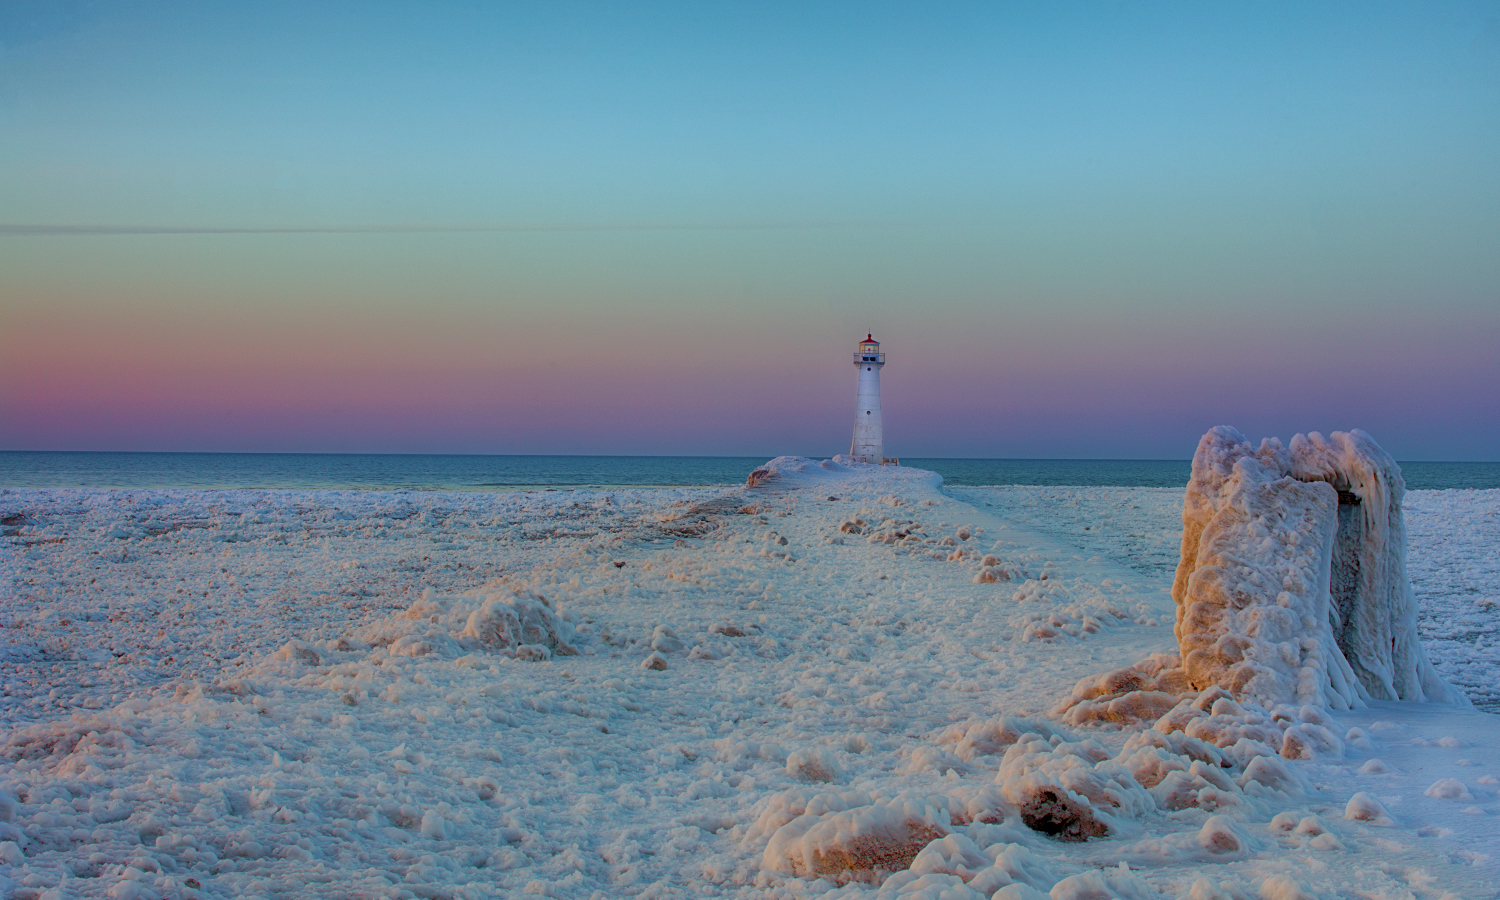 A band of color illuminates the sky above the icy waters of Lake Ontario in Sodus Point, N.Y.